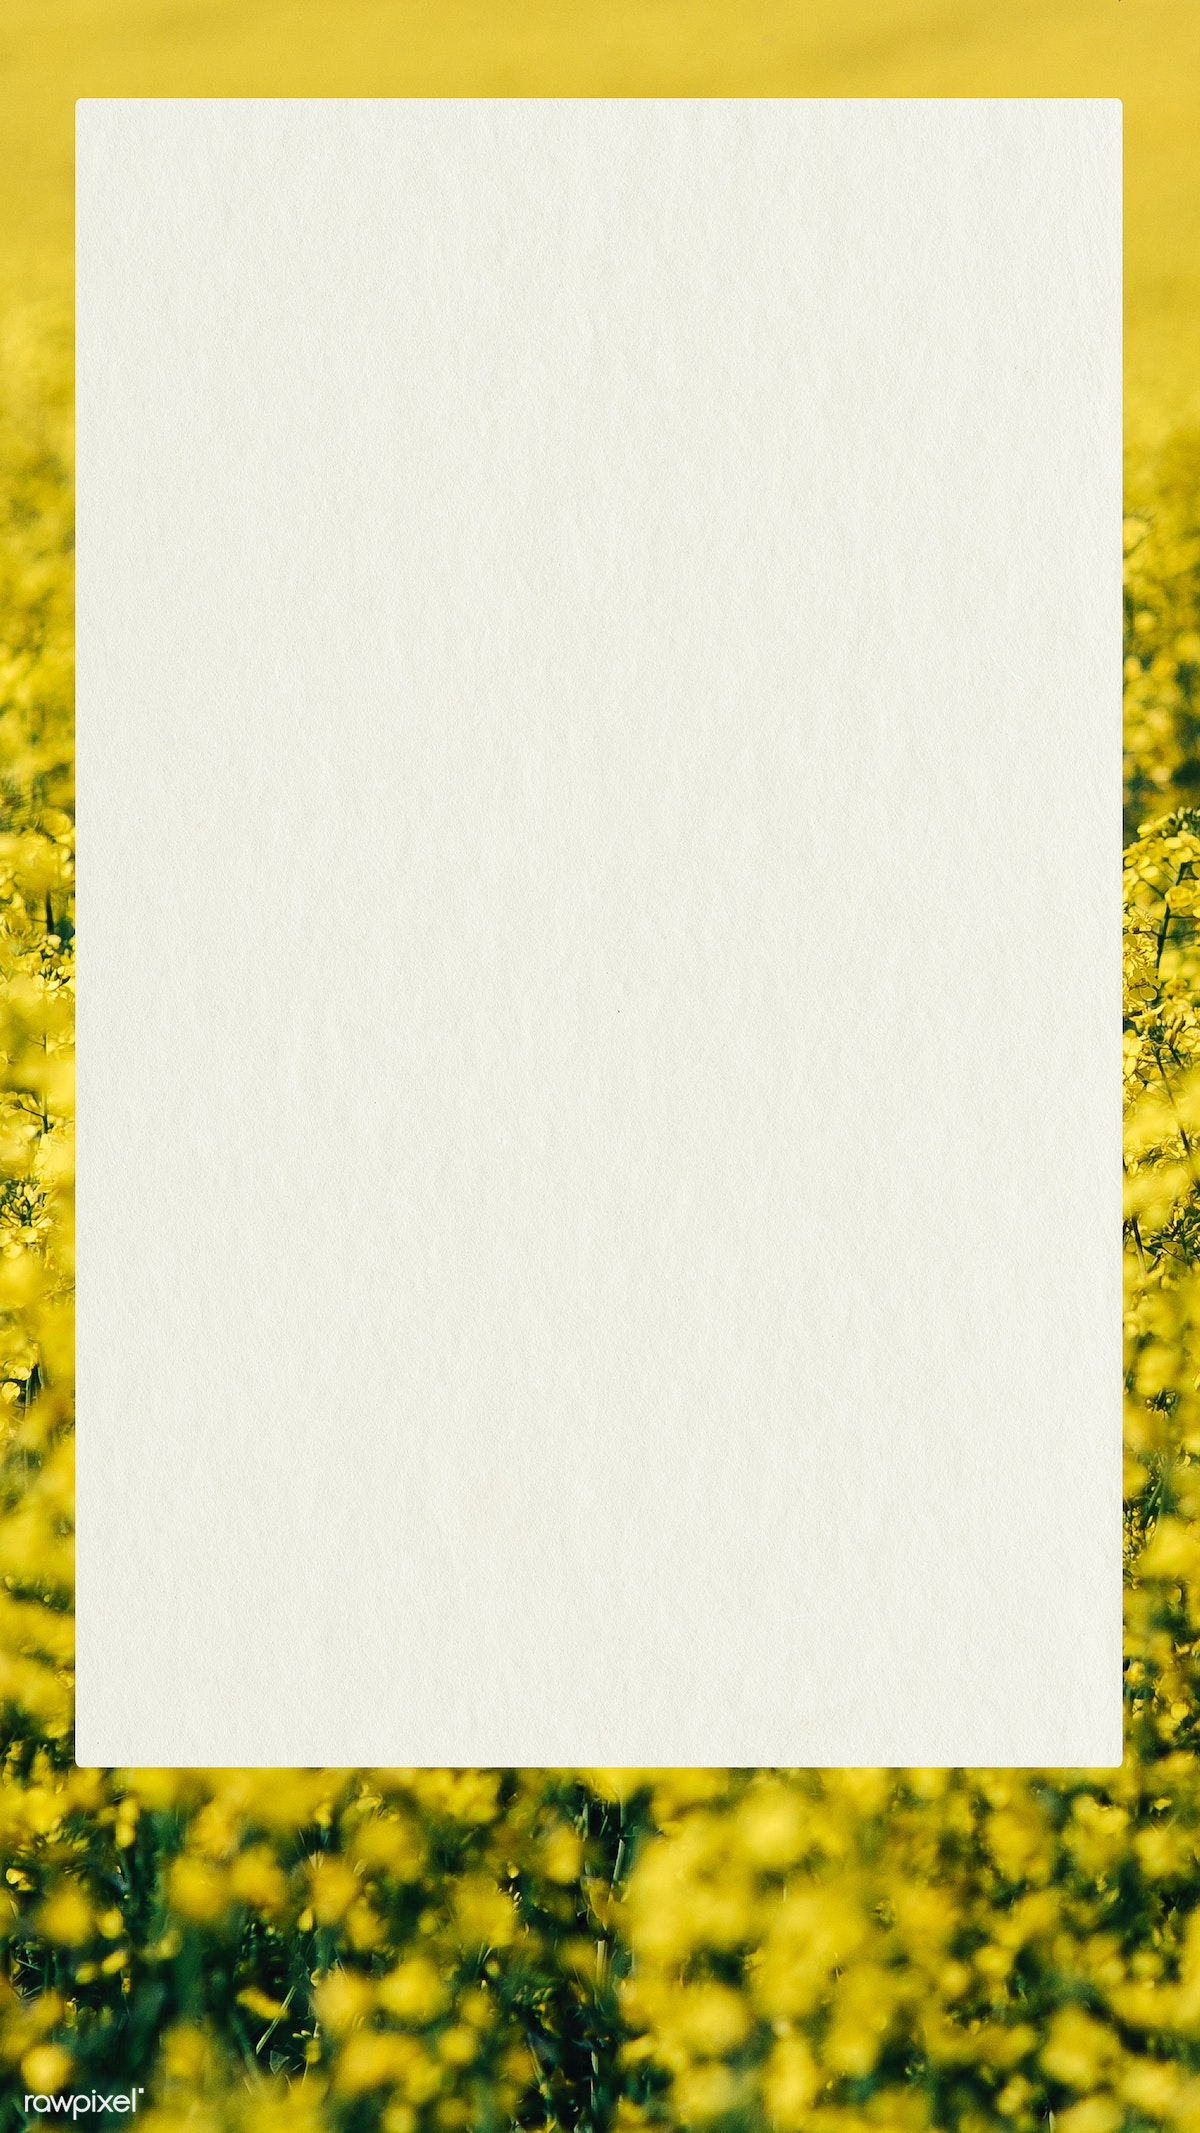 Download Premium Psd Of Card On A Field Of Yellow Flowers Mobile Wallpaper